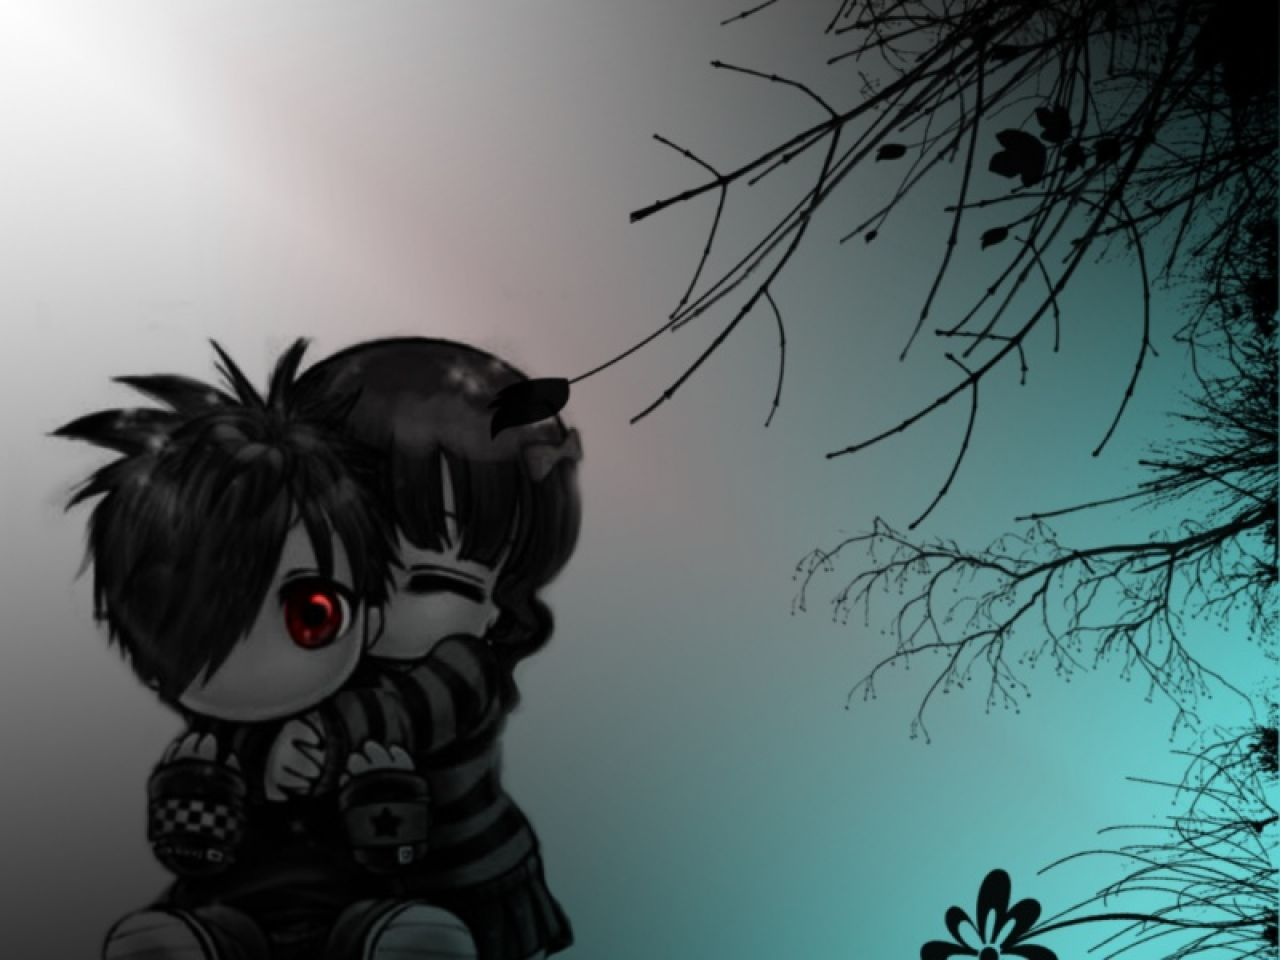 Wallpaper Emo Love couple : Sad Love Anime 32 Free Wallpaper - Hdlovewall.com